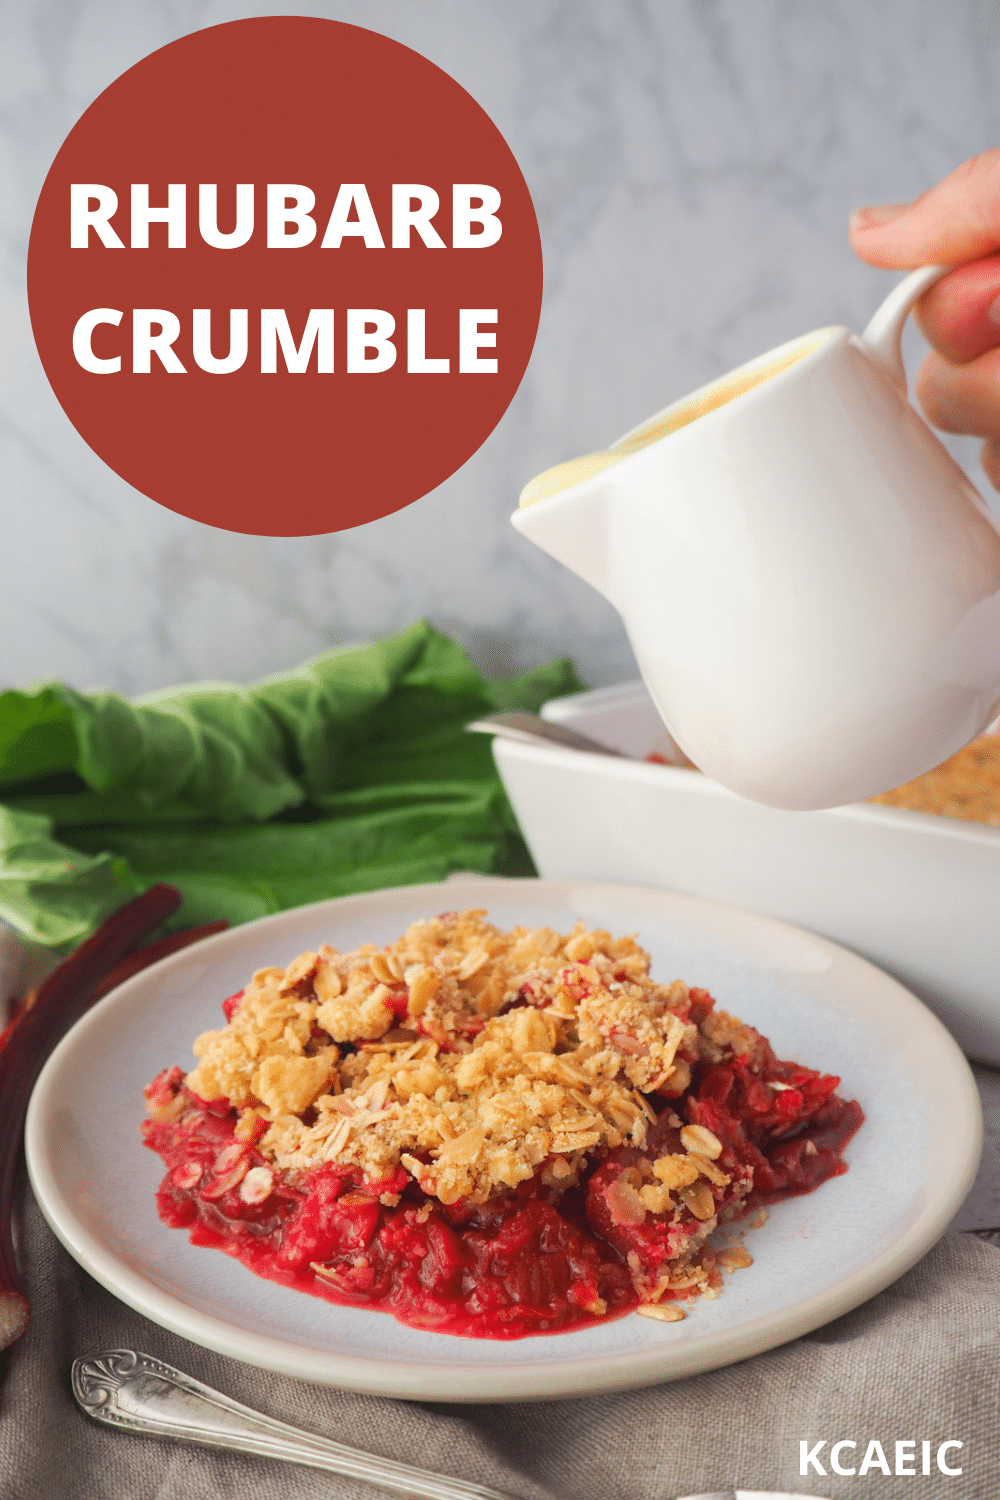 Serving of rhubarb crumble with jug of custard, with fresh rhubarb and baking dish in the background, with text overlay, rhubarb crumble and KCAEIC.